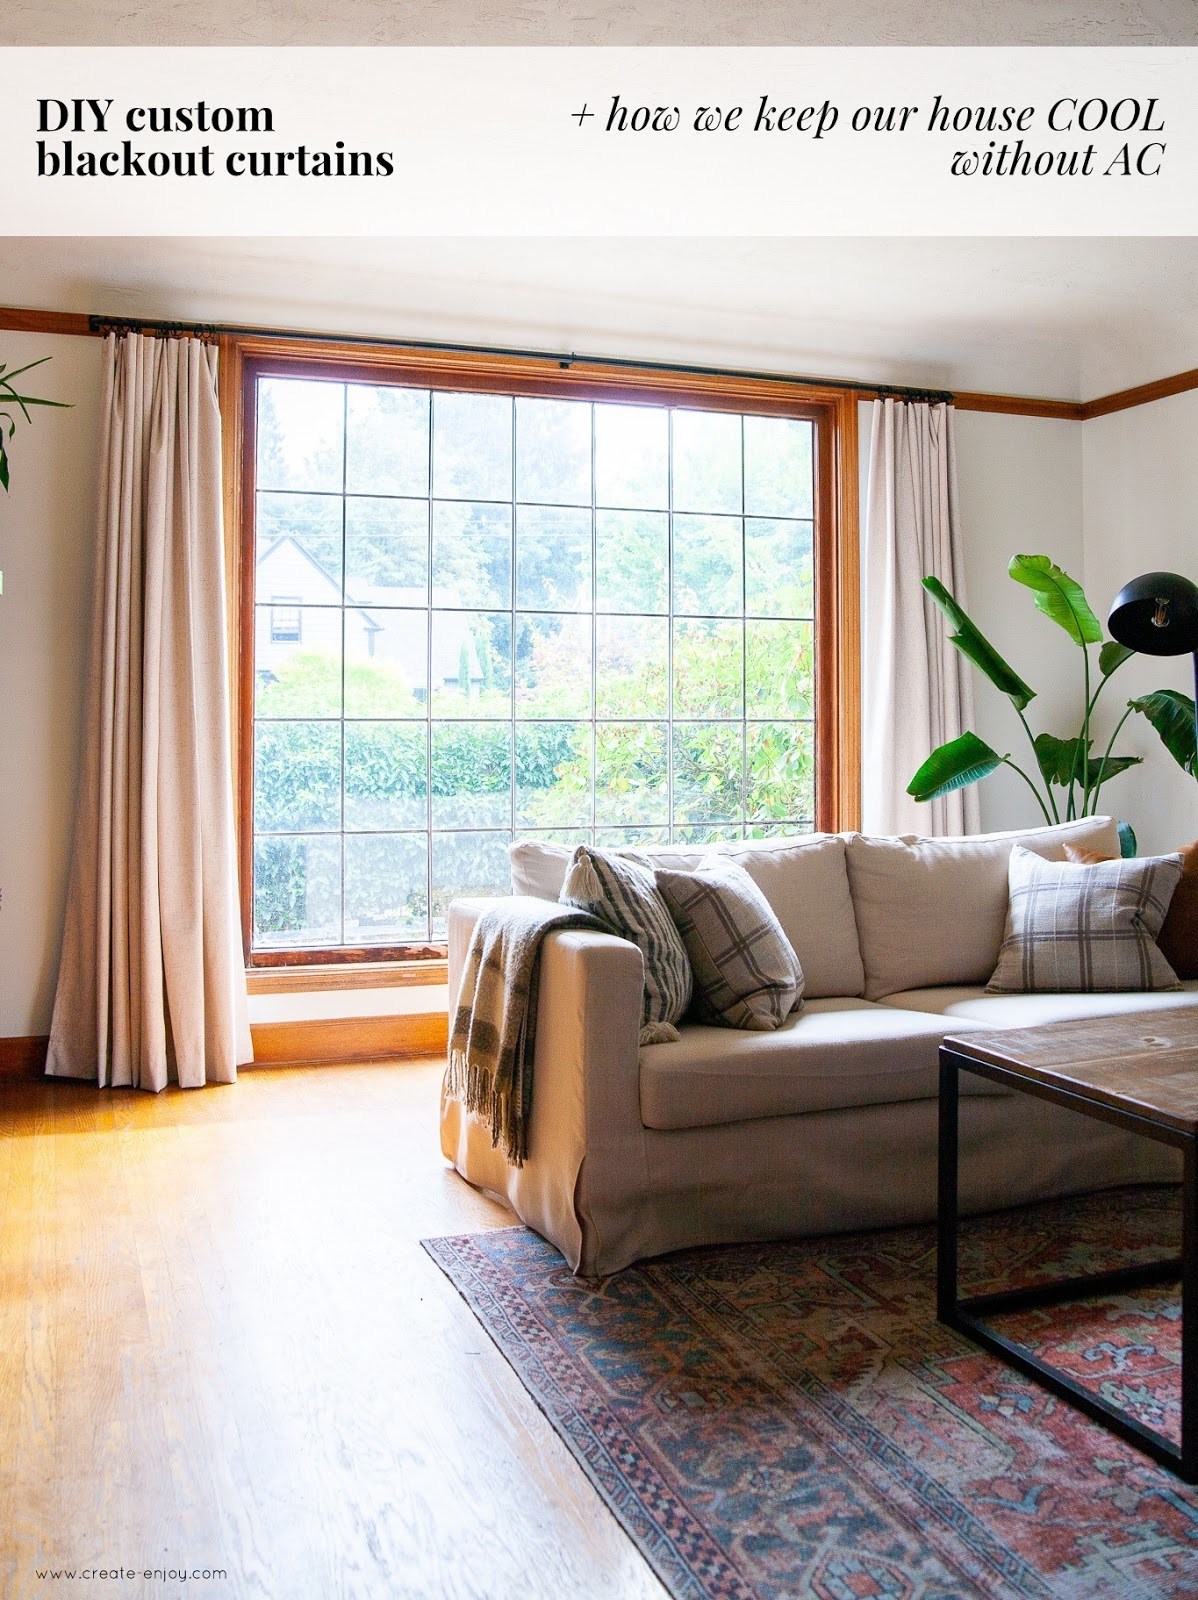 Affordable Blackout Curtain Diy And How We Keep Our House